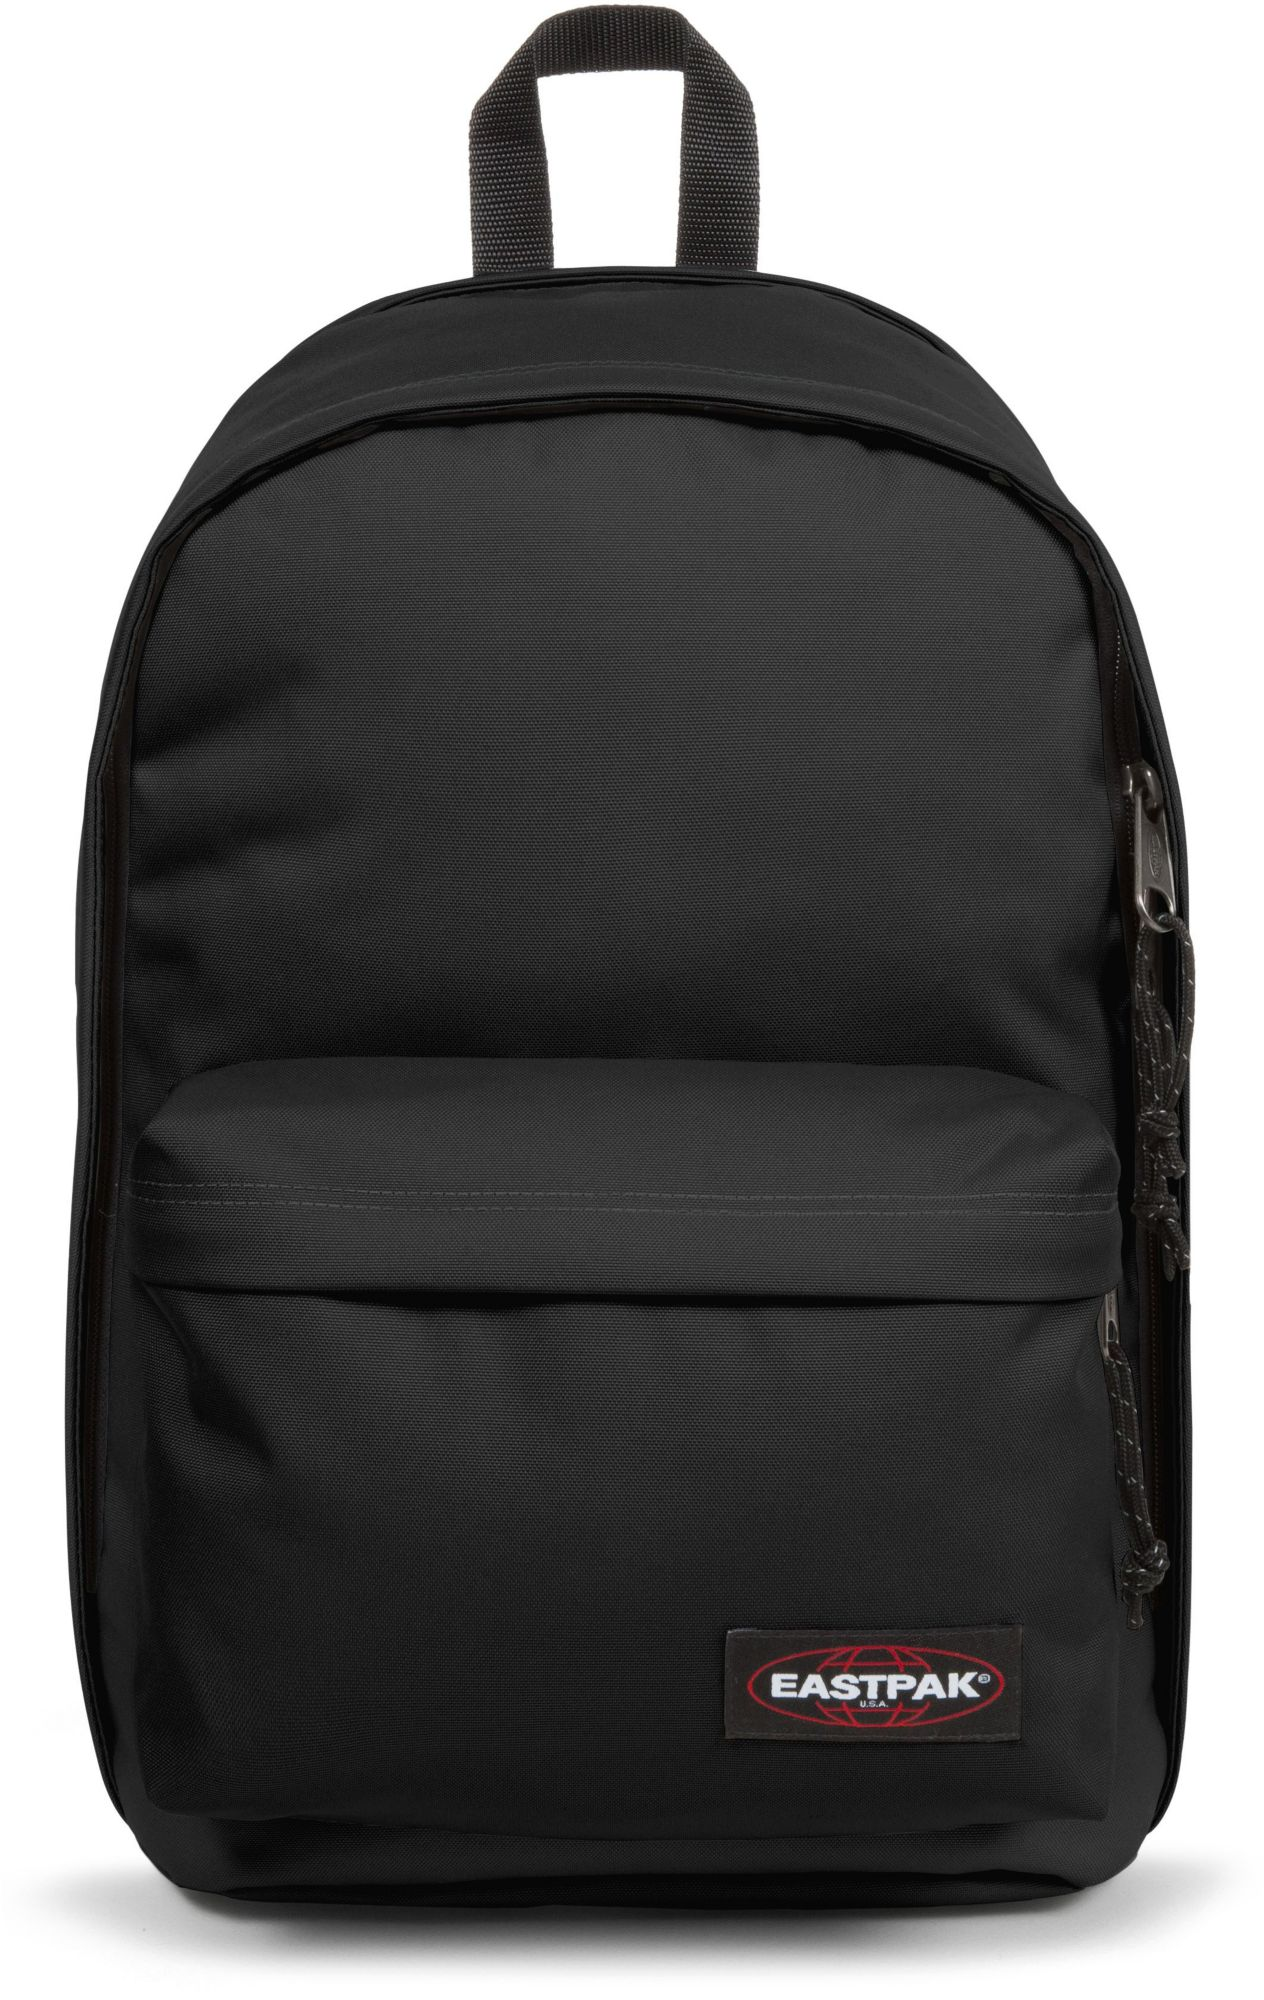 EASTPAK Eastpak Rucksack, »BACK TO WORK black«